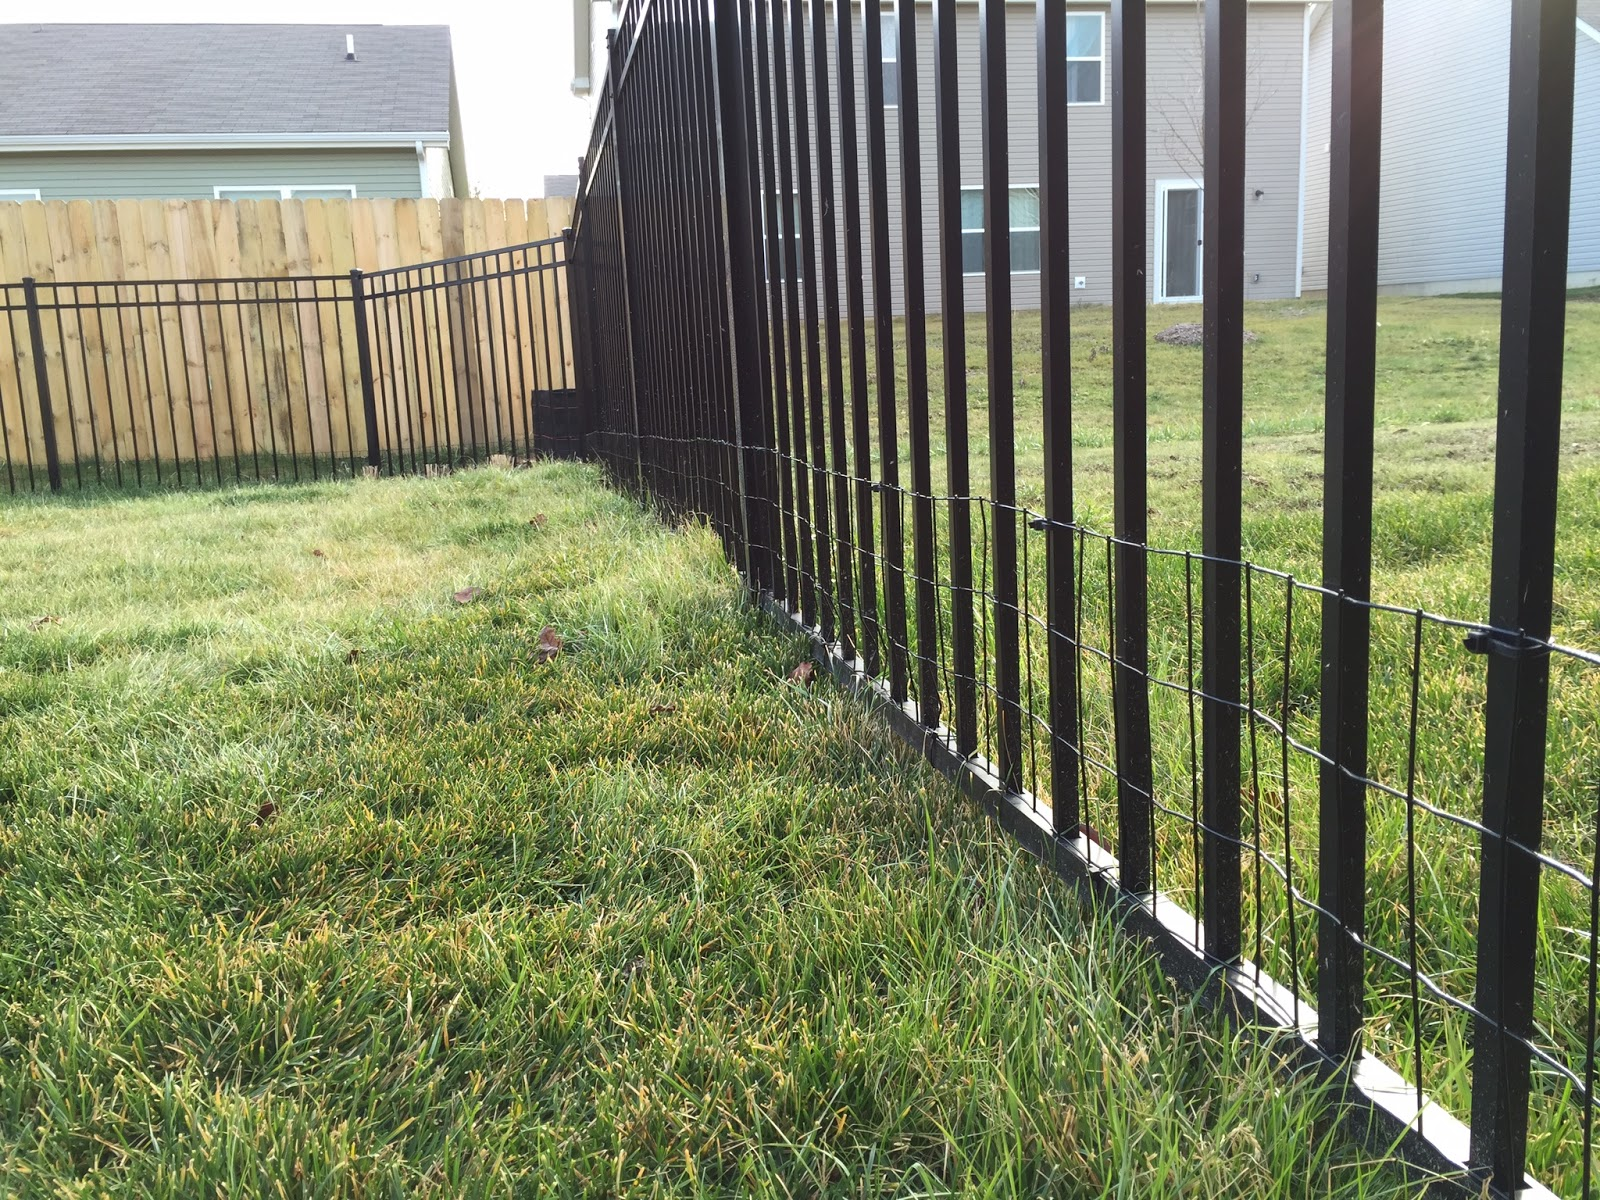 Wire Fence For Yard : Small Dog in Yard with Welded Wire Aluminum Fence Addition [Backyard